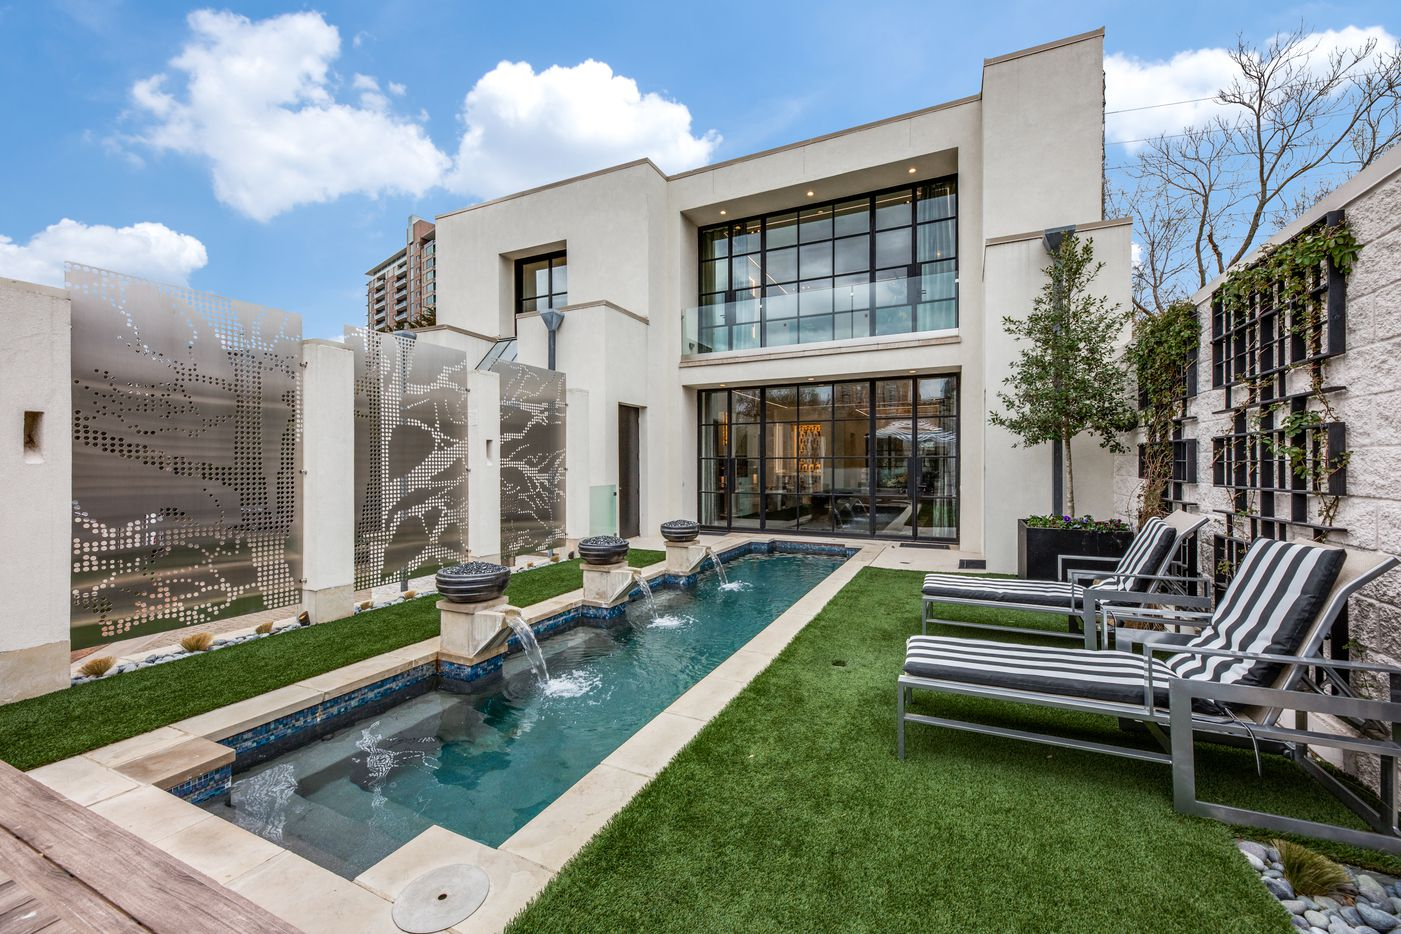 Take a look at the house at 2814 Park Bridge Court in Dallas, TX.